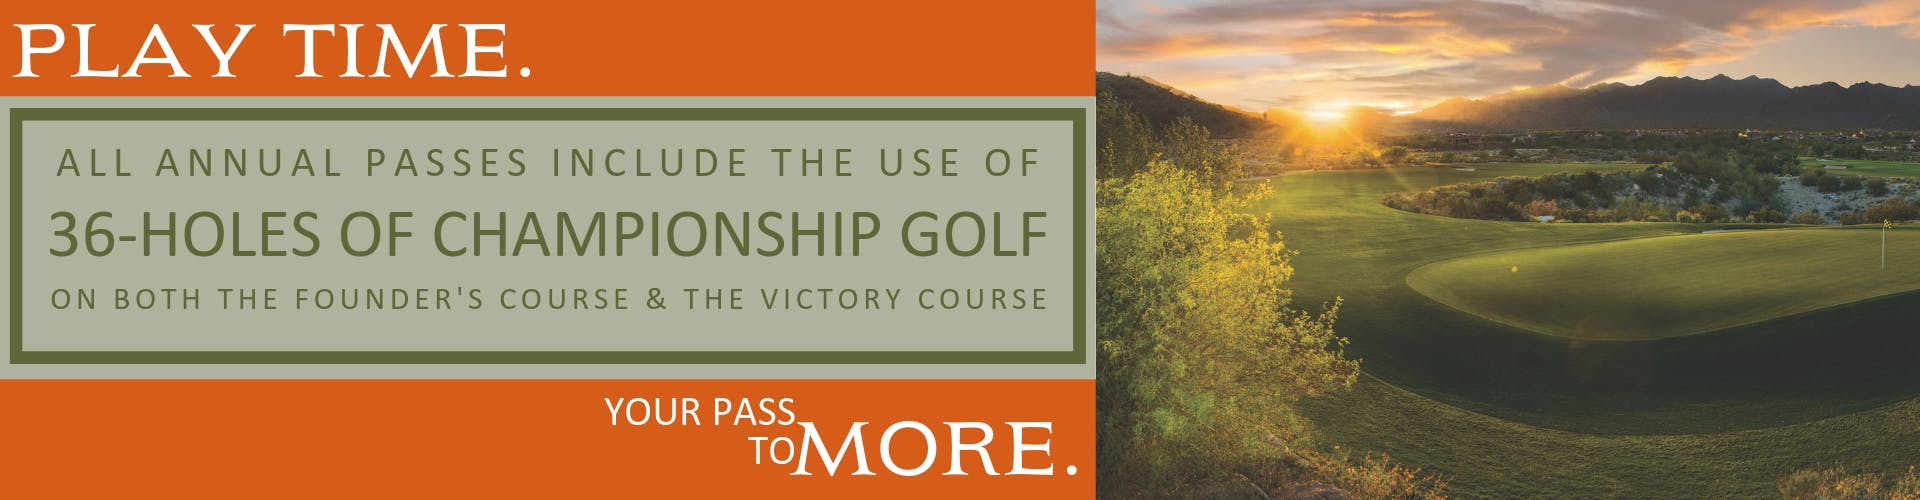 Play Time. All annual passes include the use of 36 holes of championship golf on both the Founder's Course and The Victory Course. Your pass to more.